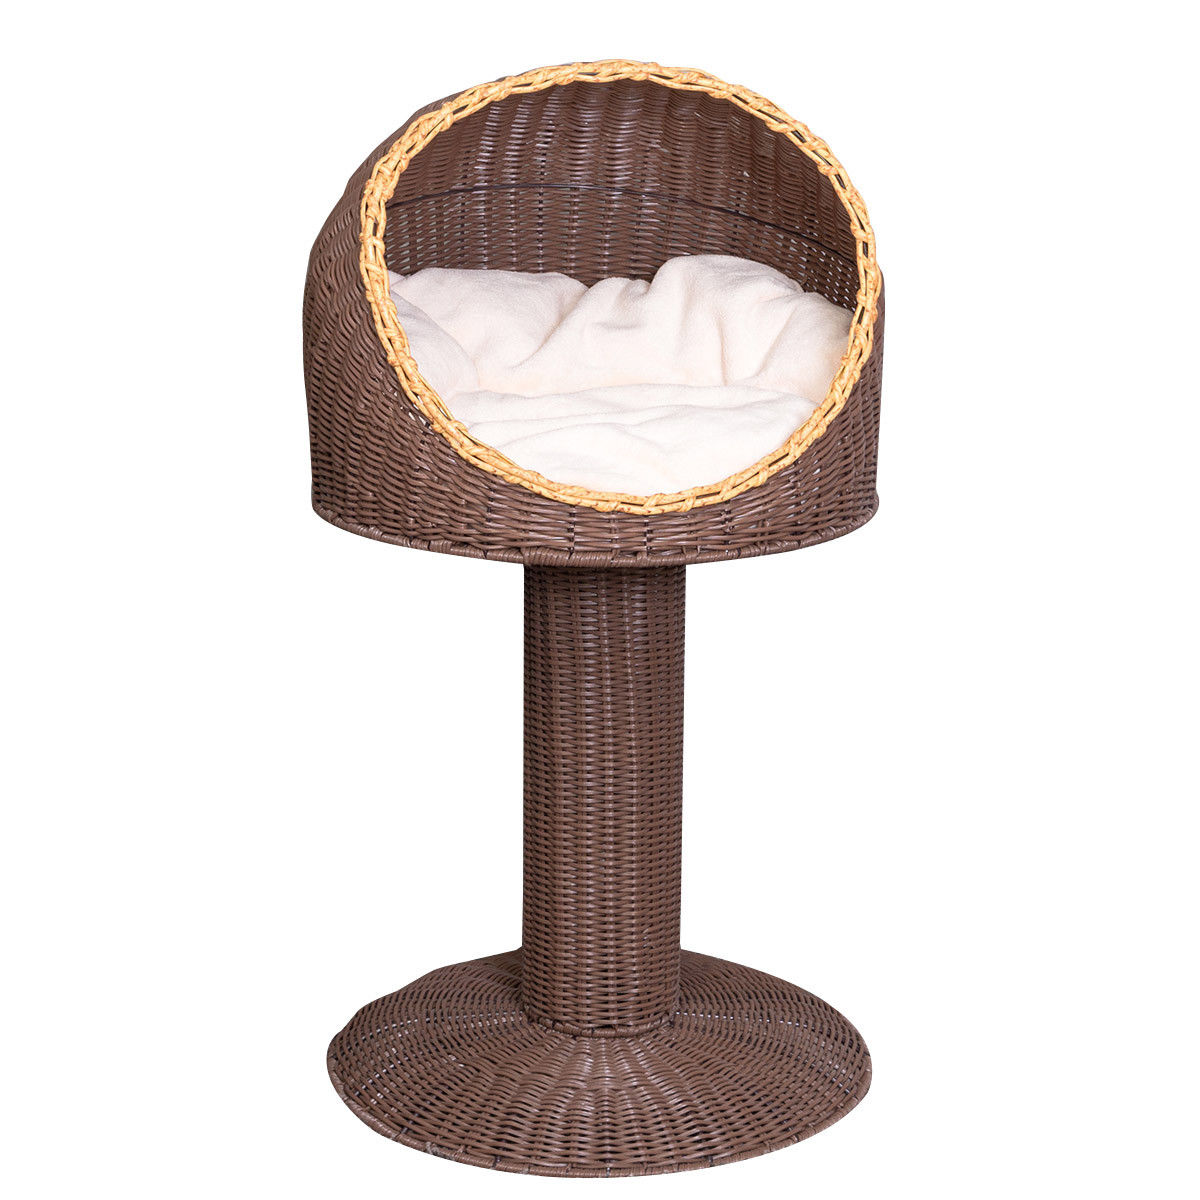 Gymax 17'' Cat Bed Home Ball Hooded Rattan Wicker Elevated Cat Kitten with Cushion